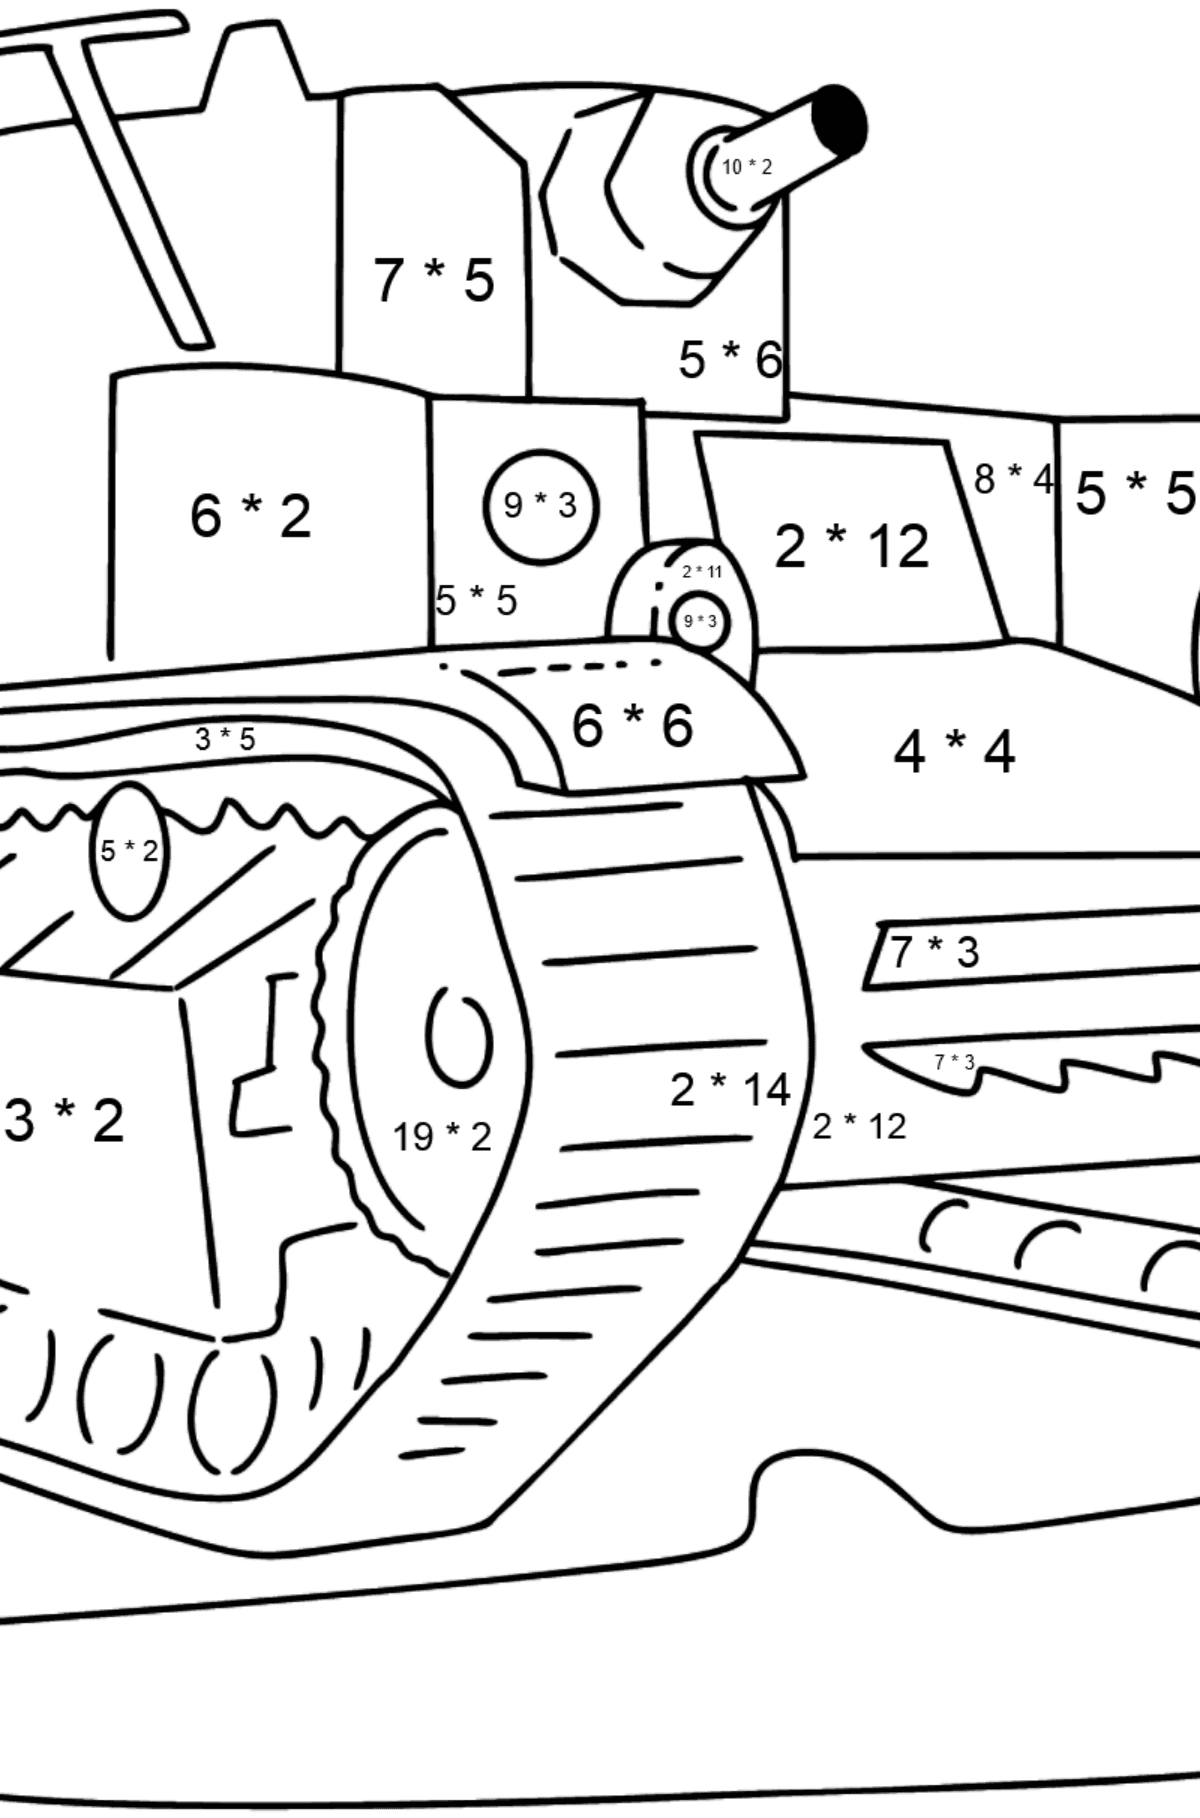 Tank T 28 coloring page - Math Coloring - Multiplication for Kids